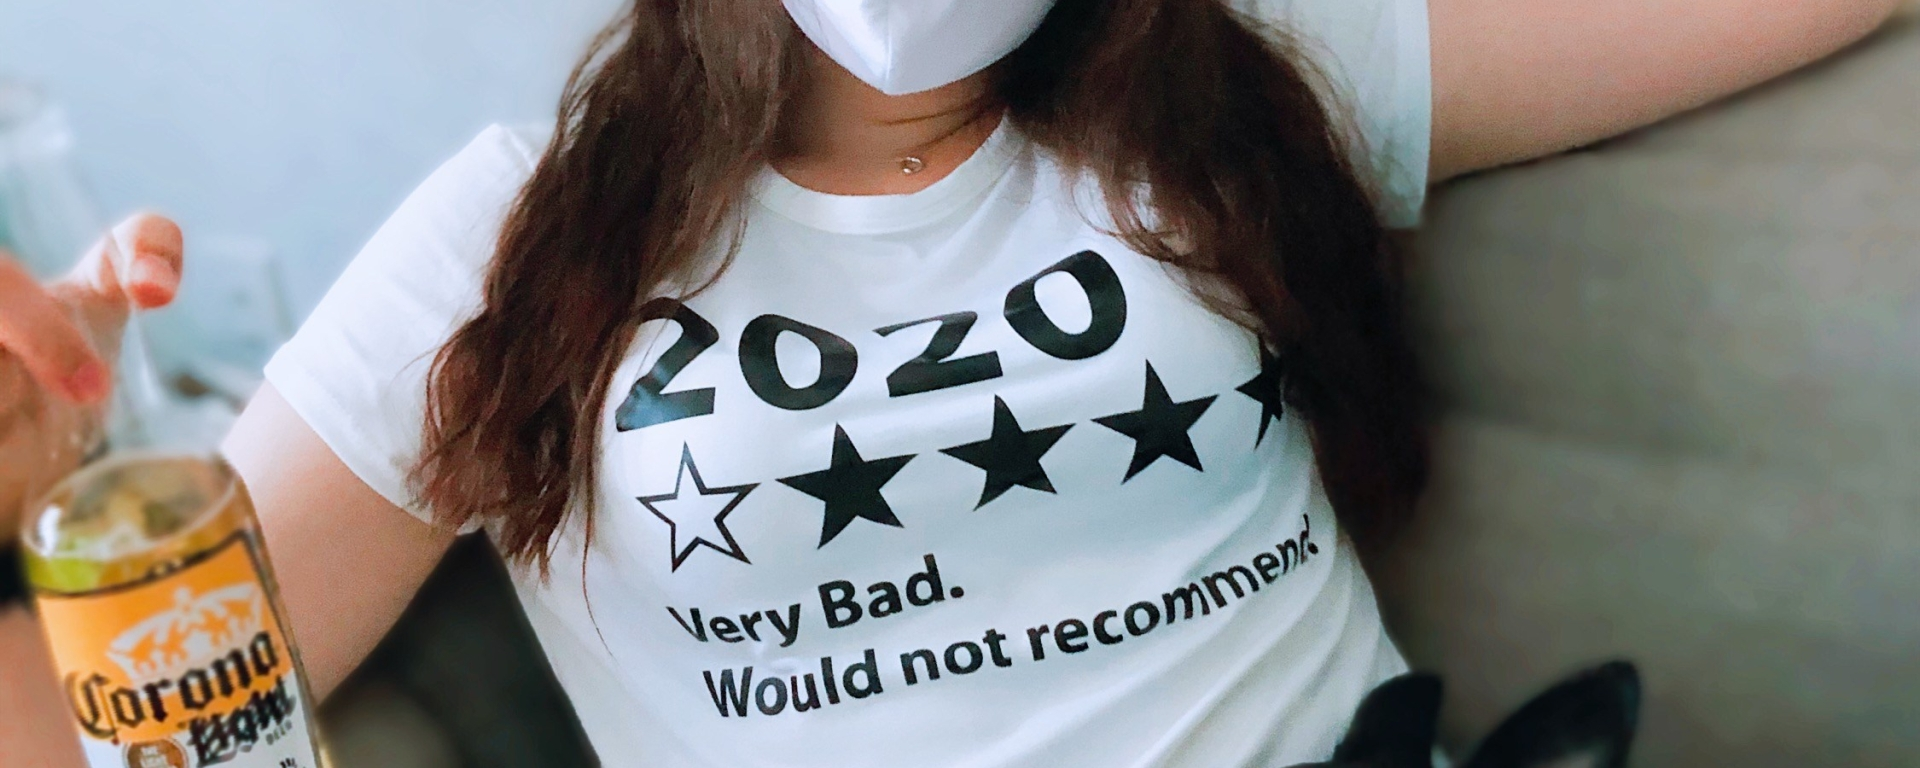 2020—Very Bad. Would not recommend.